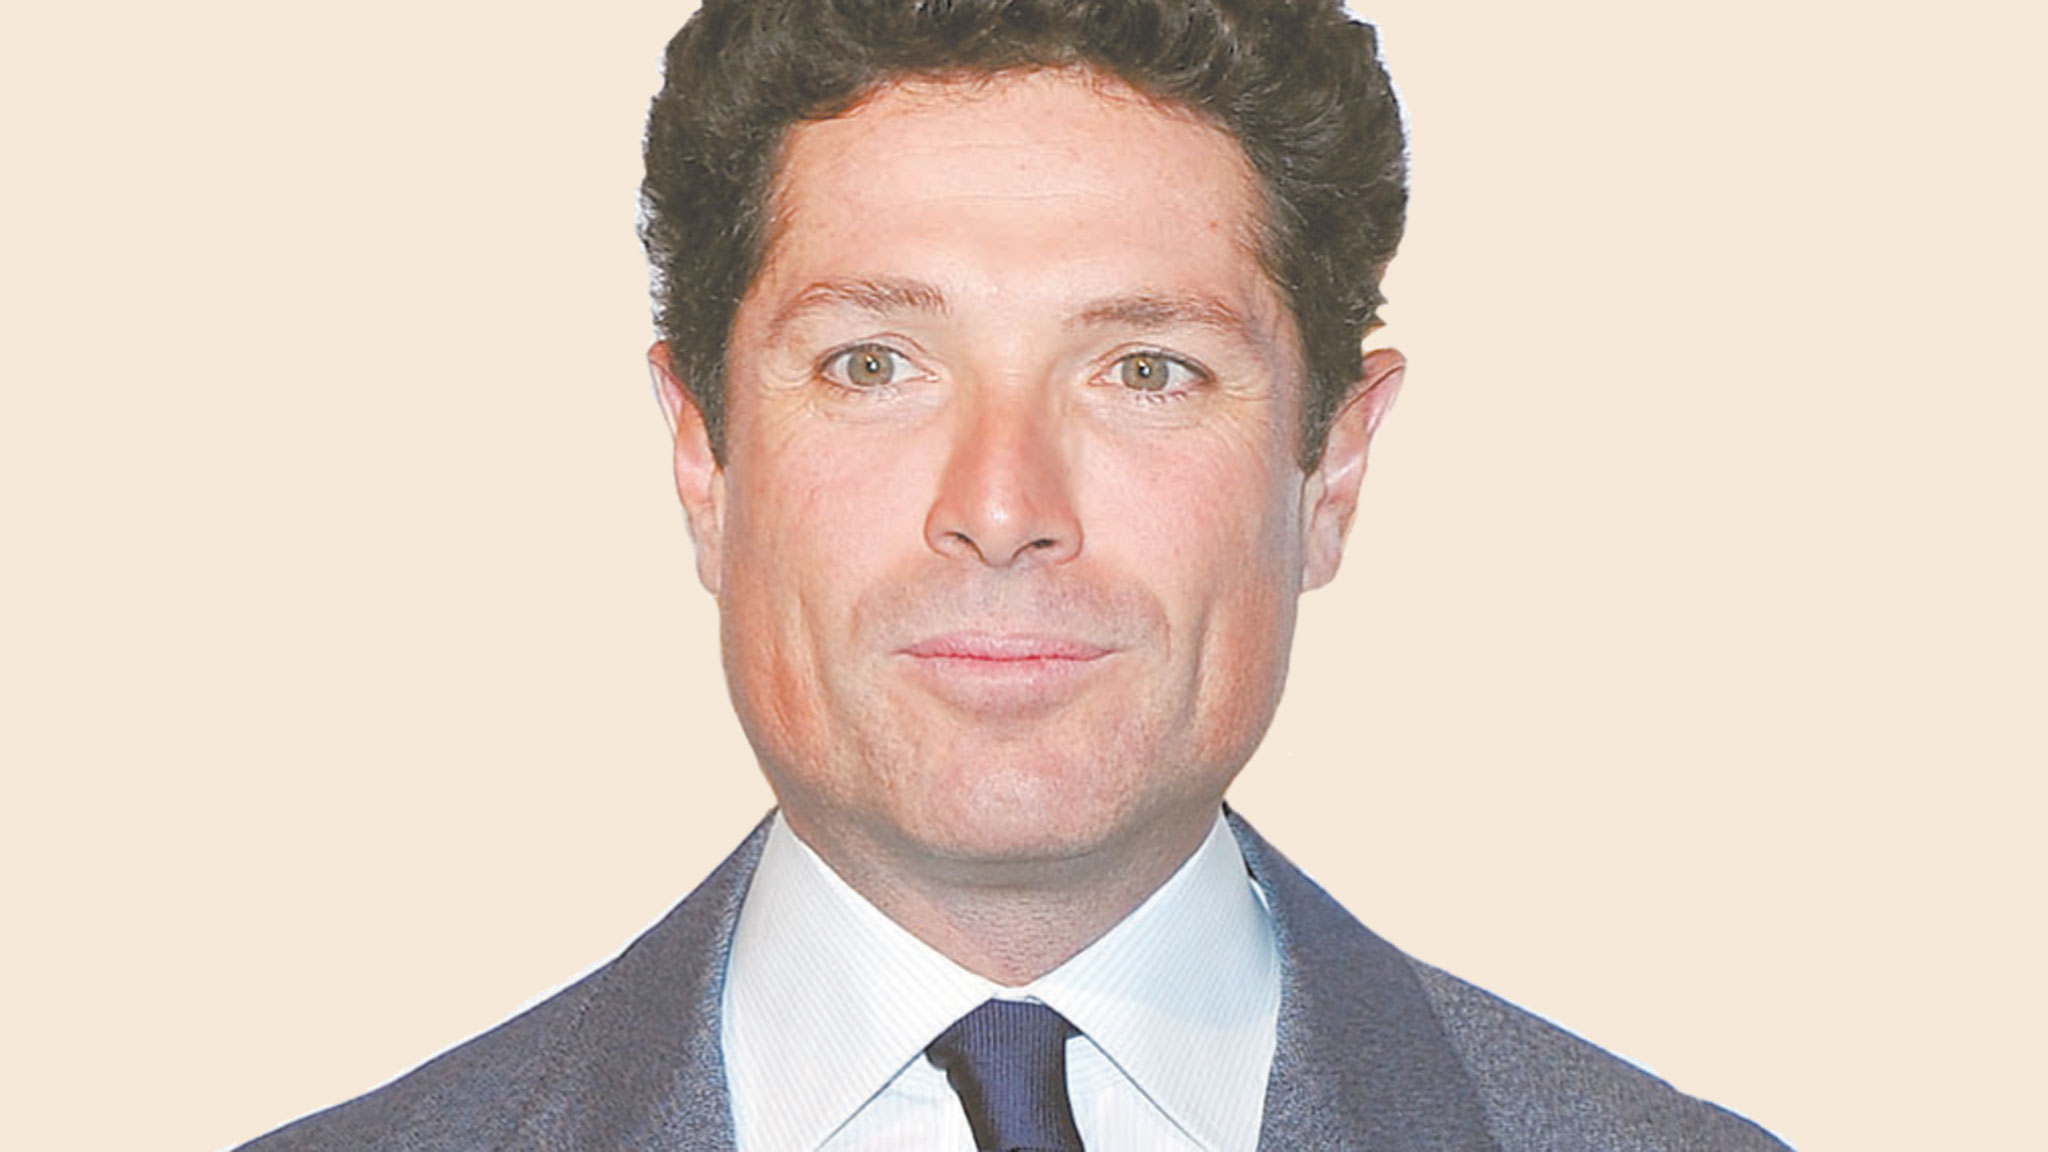 Matteo Marzotto reveals his plans to revitalise his country's gold industry